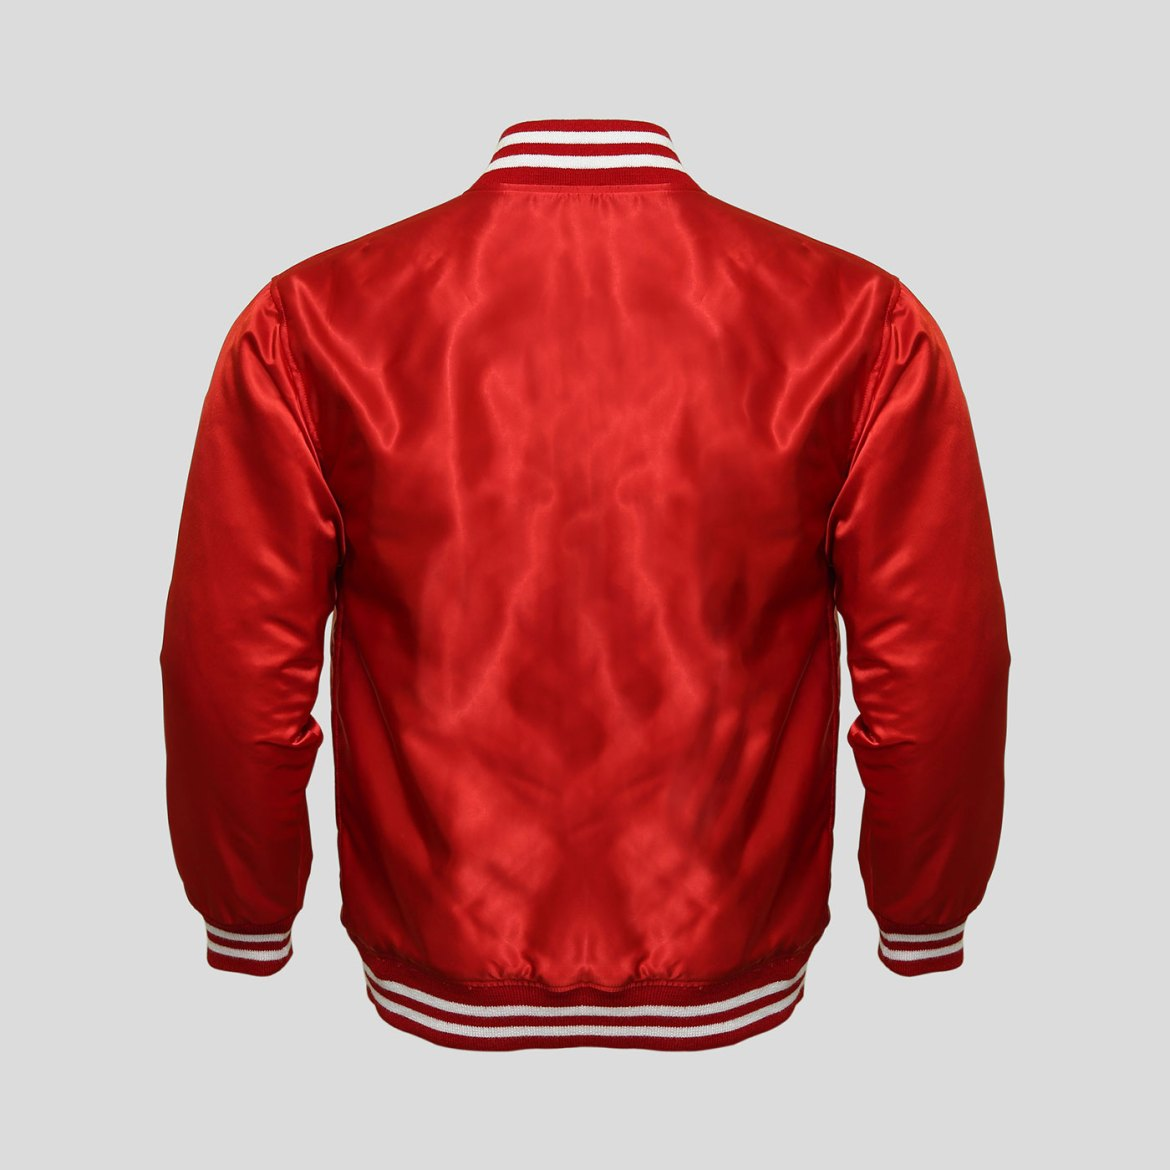 Red Satin Baseball Jacket | Outdoor Jacket